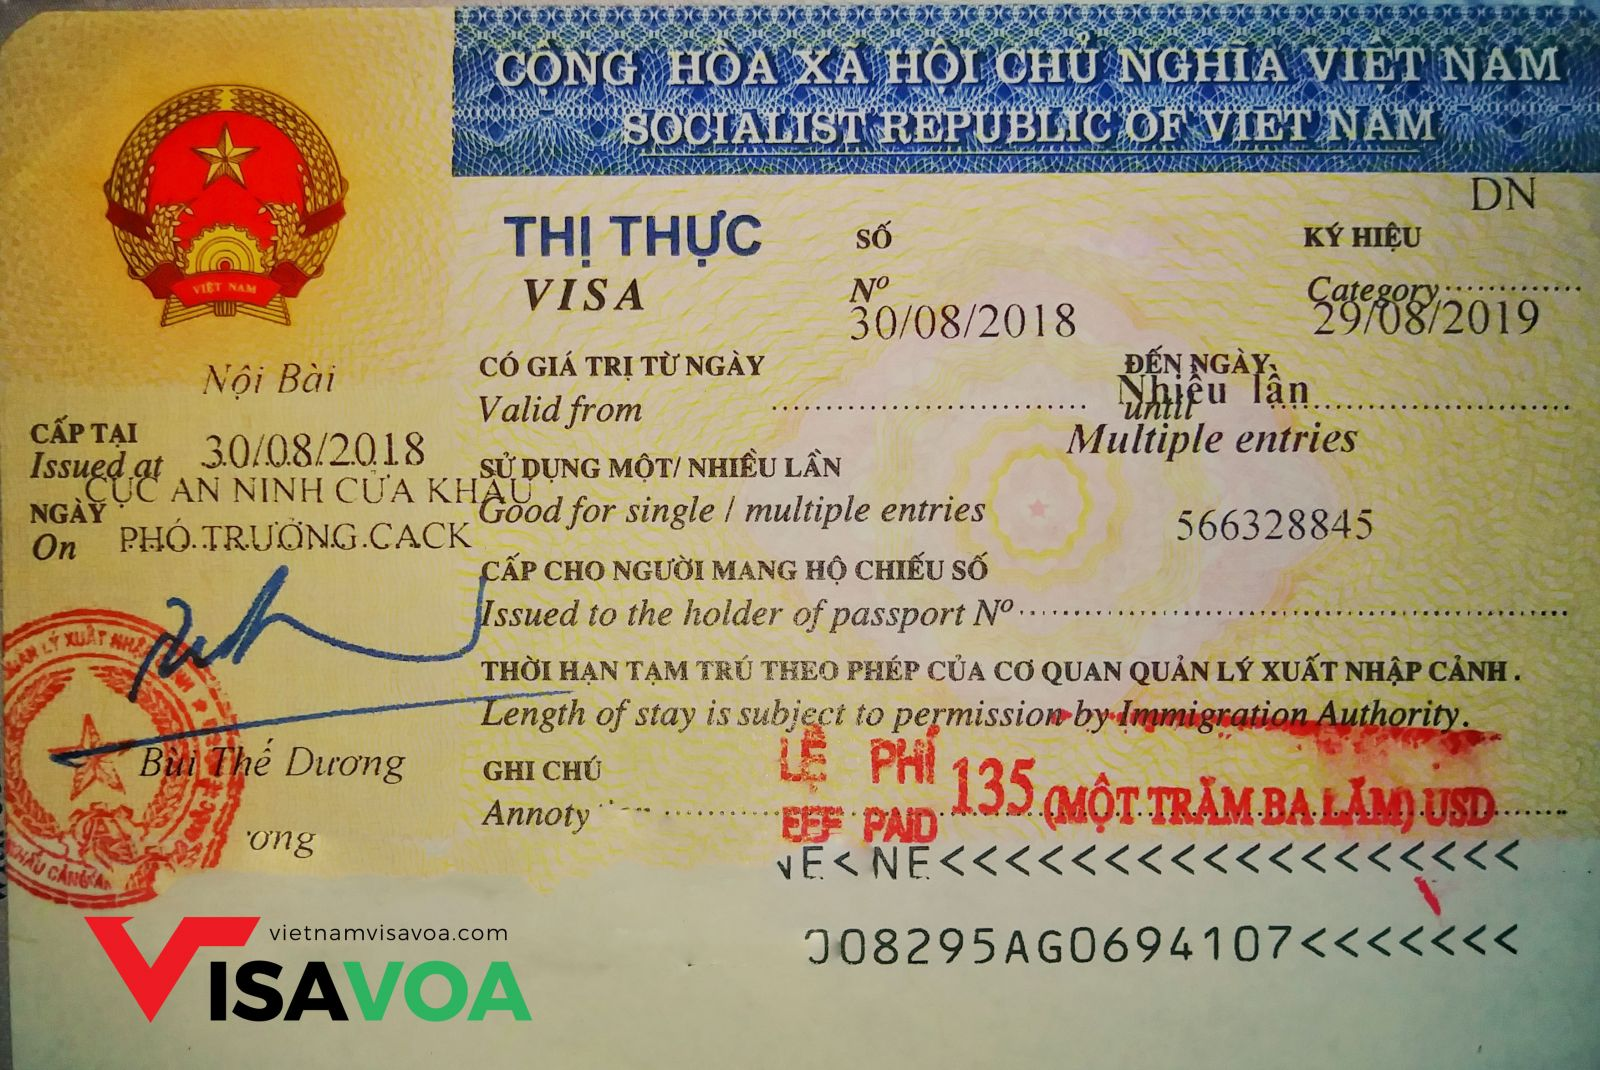 Long term Vietnam visa for US passport holders 2019